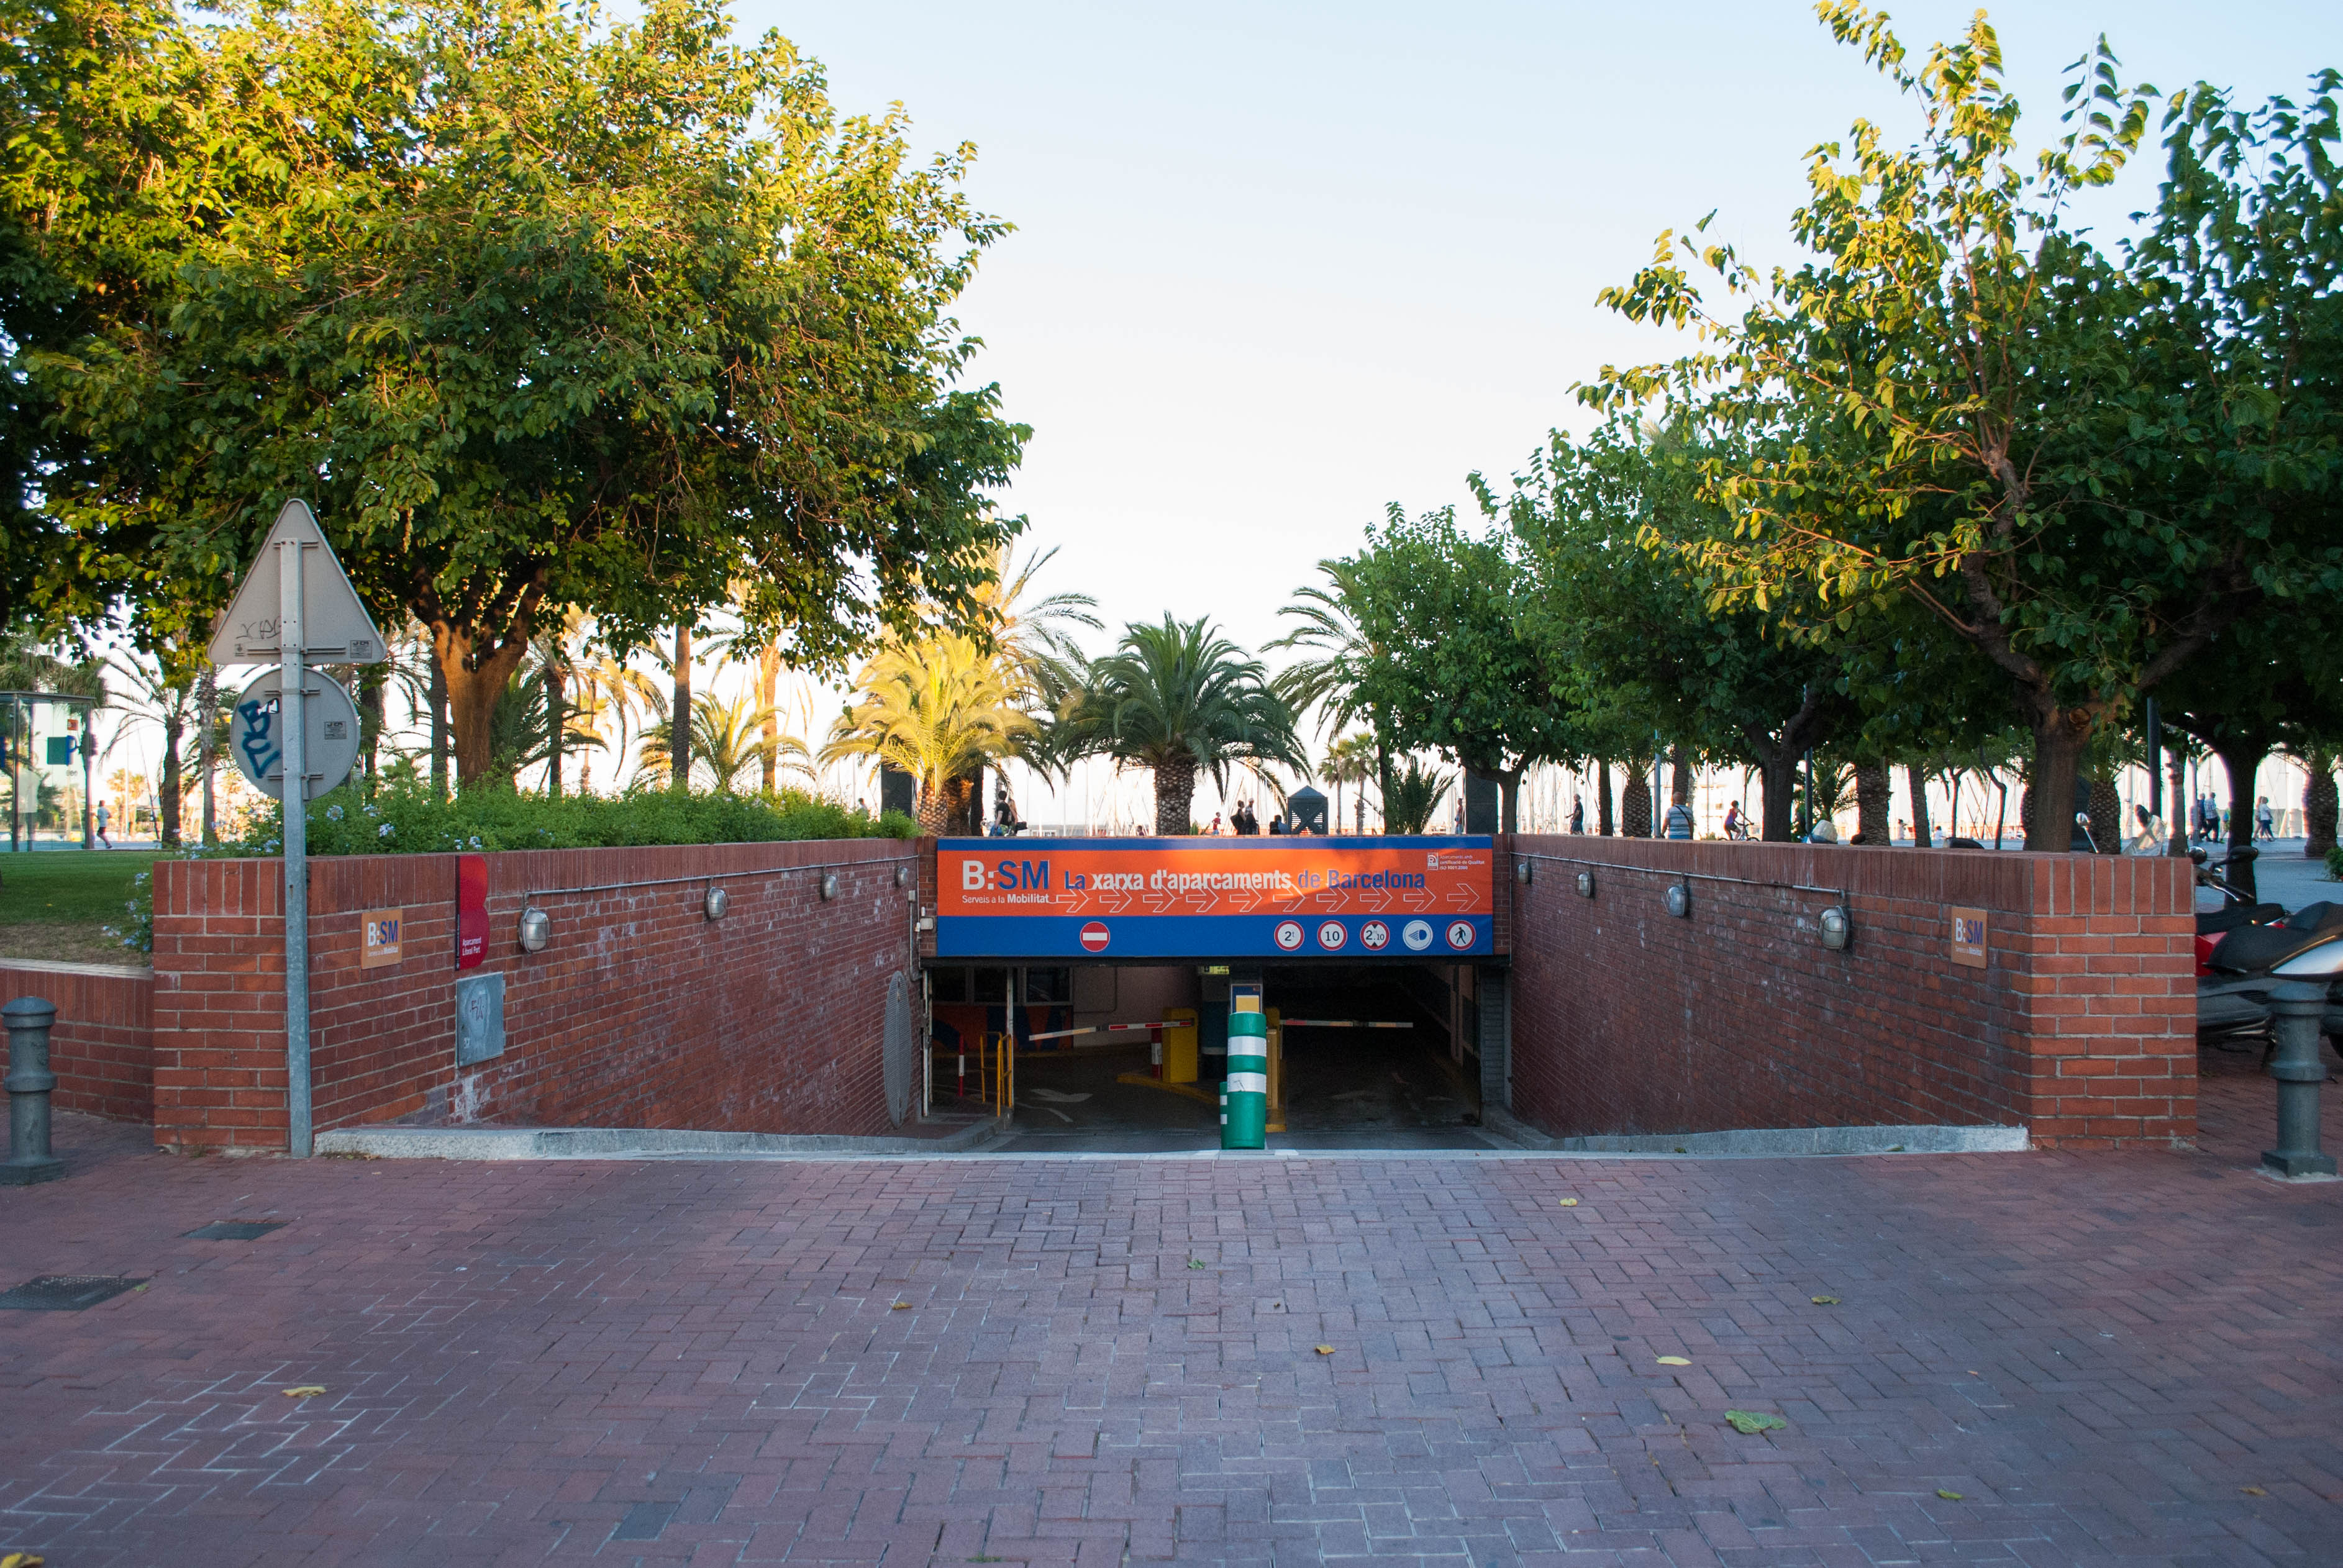 Car Parking in Barcelona - Guide